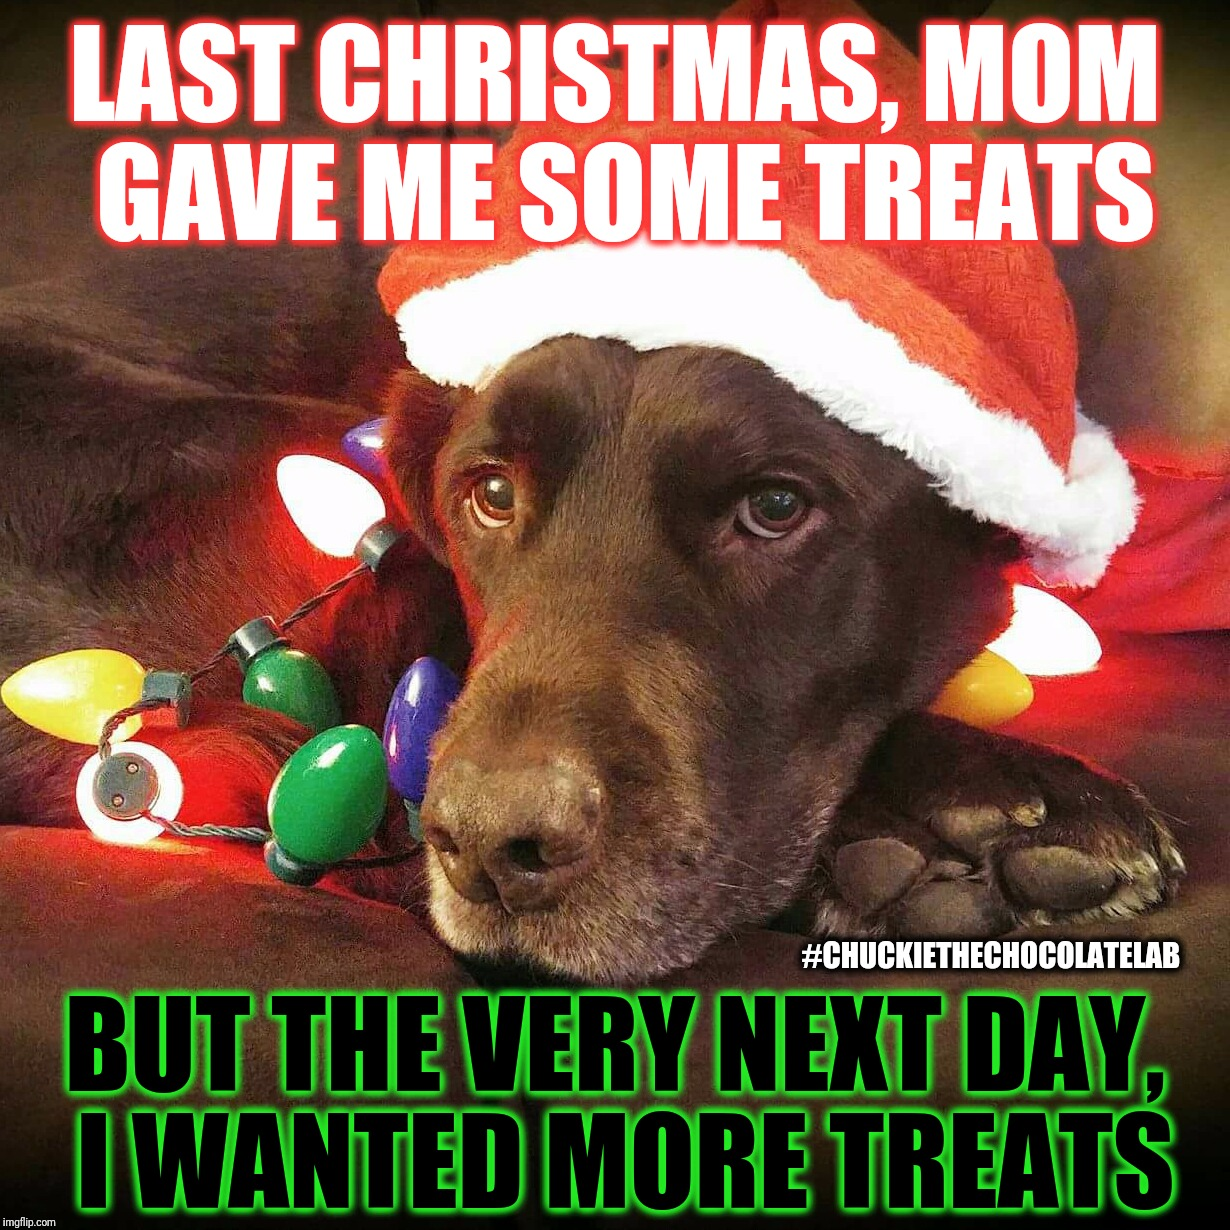 Last Christmas  | LAST CHRISTMAS, MOM GAVE ME SOME TREATS #CHUCKIETHECHOCOLATELAB BUT THE VERY NEXT DAY, I WANTED MORE TREATS | image tagged in chuckie the chocolate lab teamchuckie,dogs,funny,memes,christmas,holidays | made w/ Imgflip meme maker